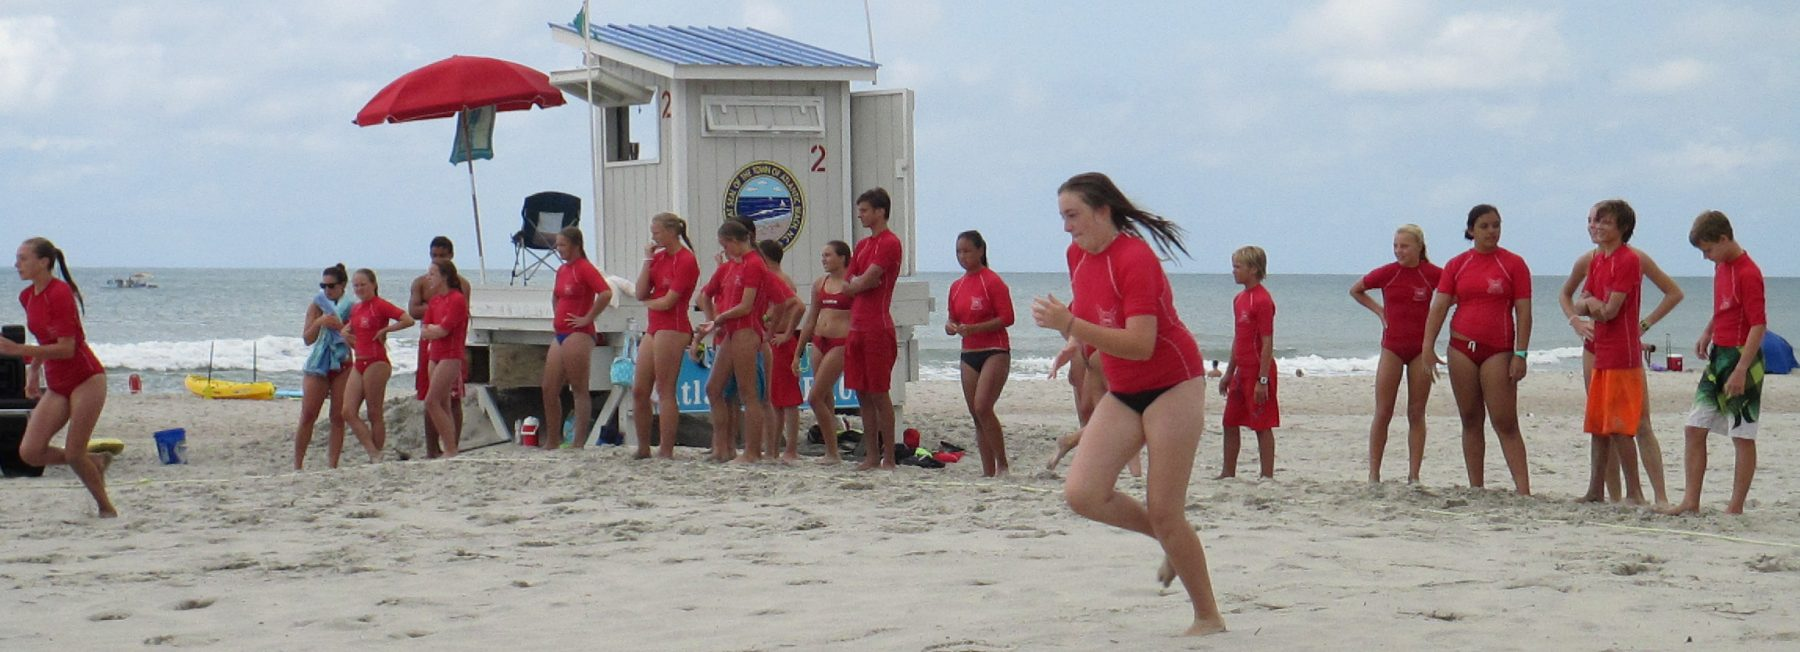 Jr. Lifeguard Camp